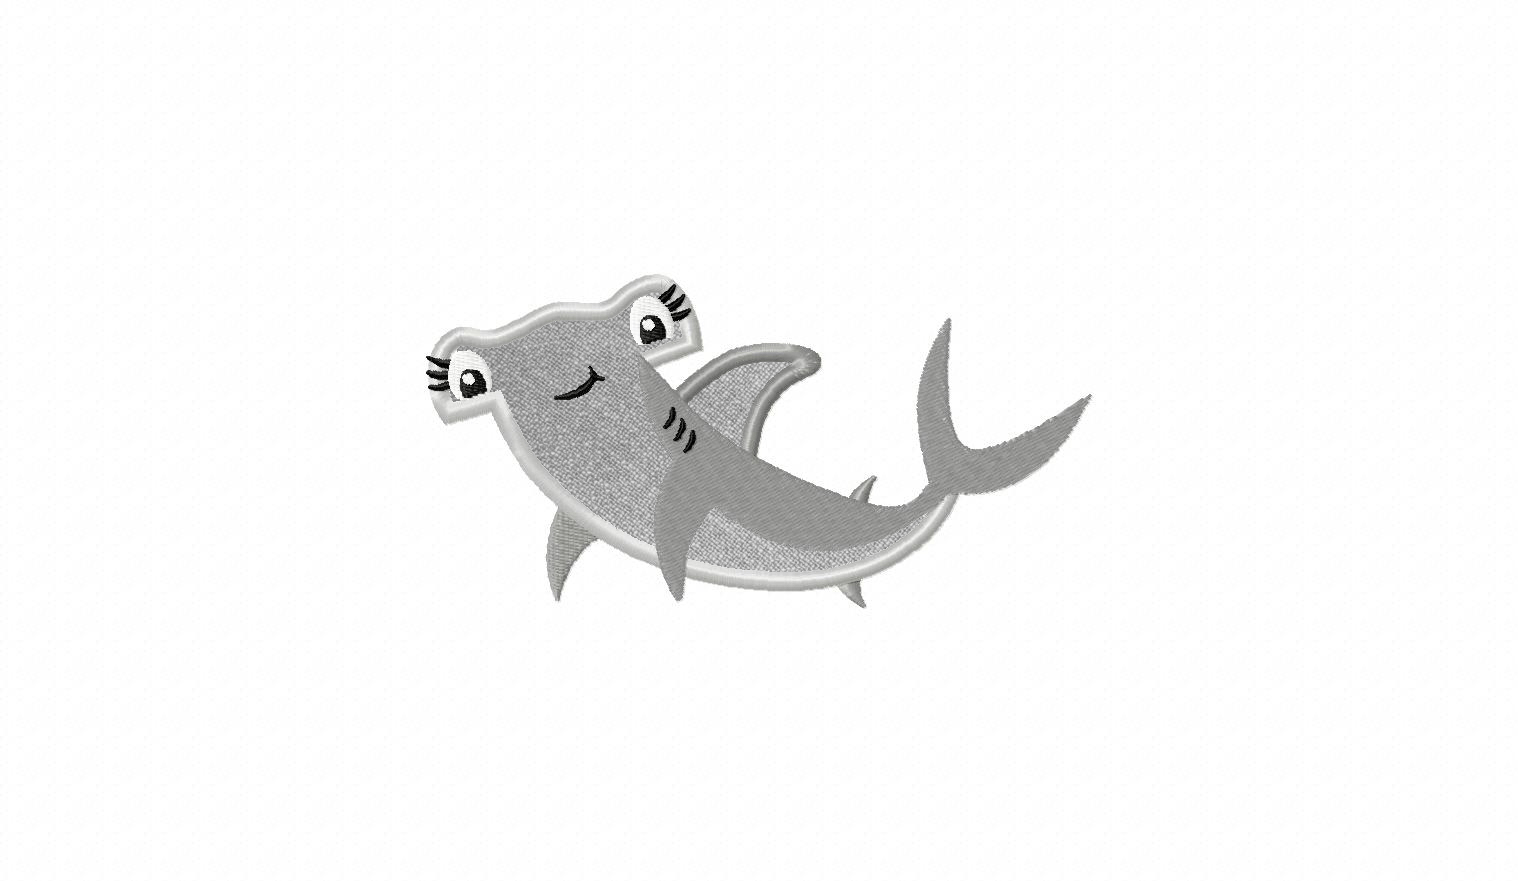 c40a5f4864d Hammerhead Shark Includes Both Applique and Filled